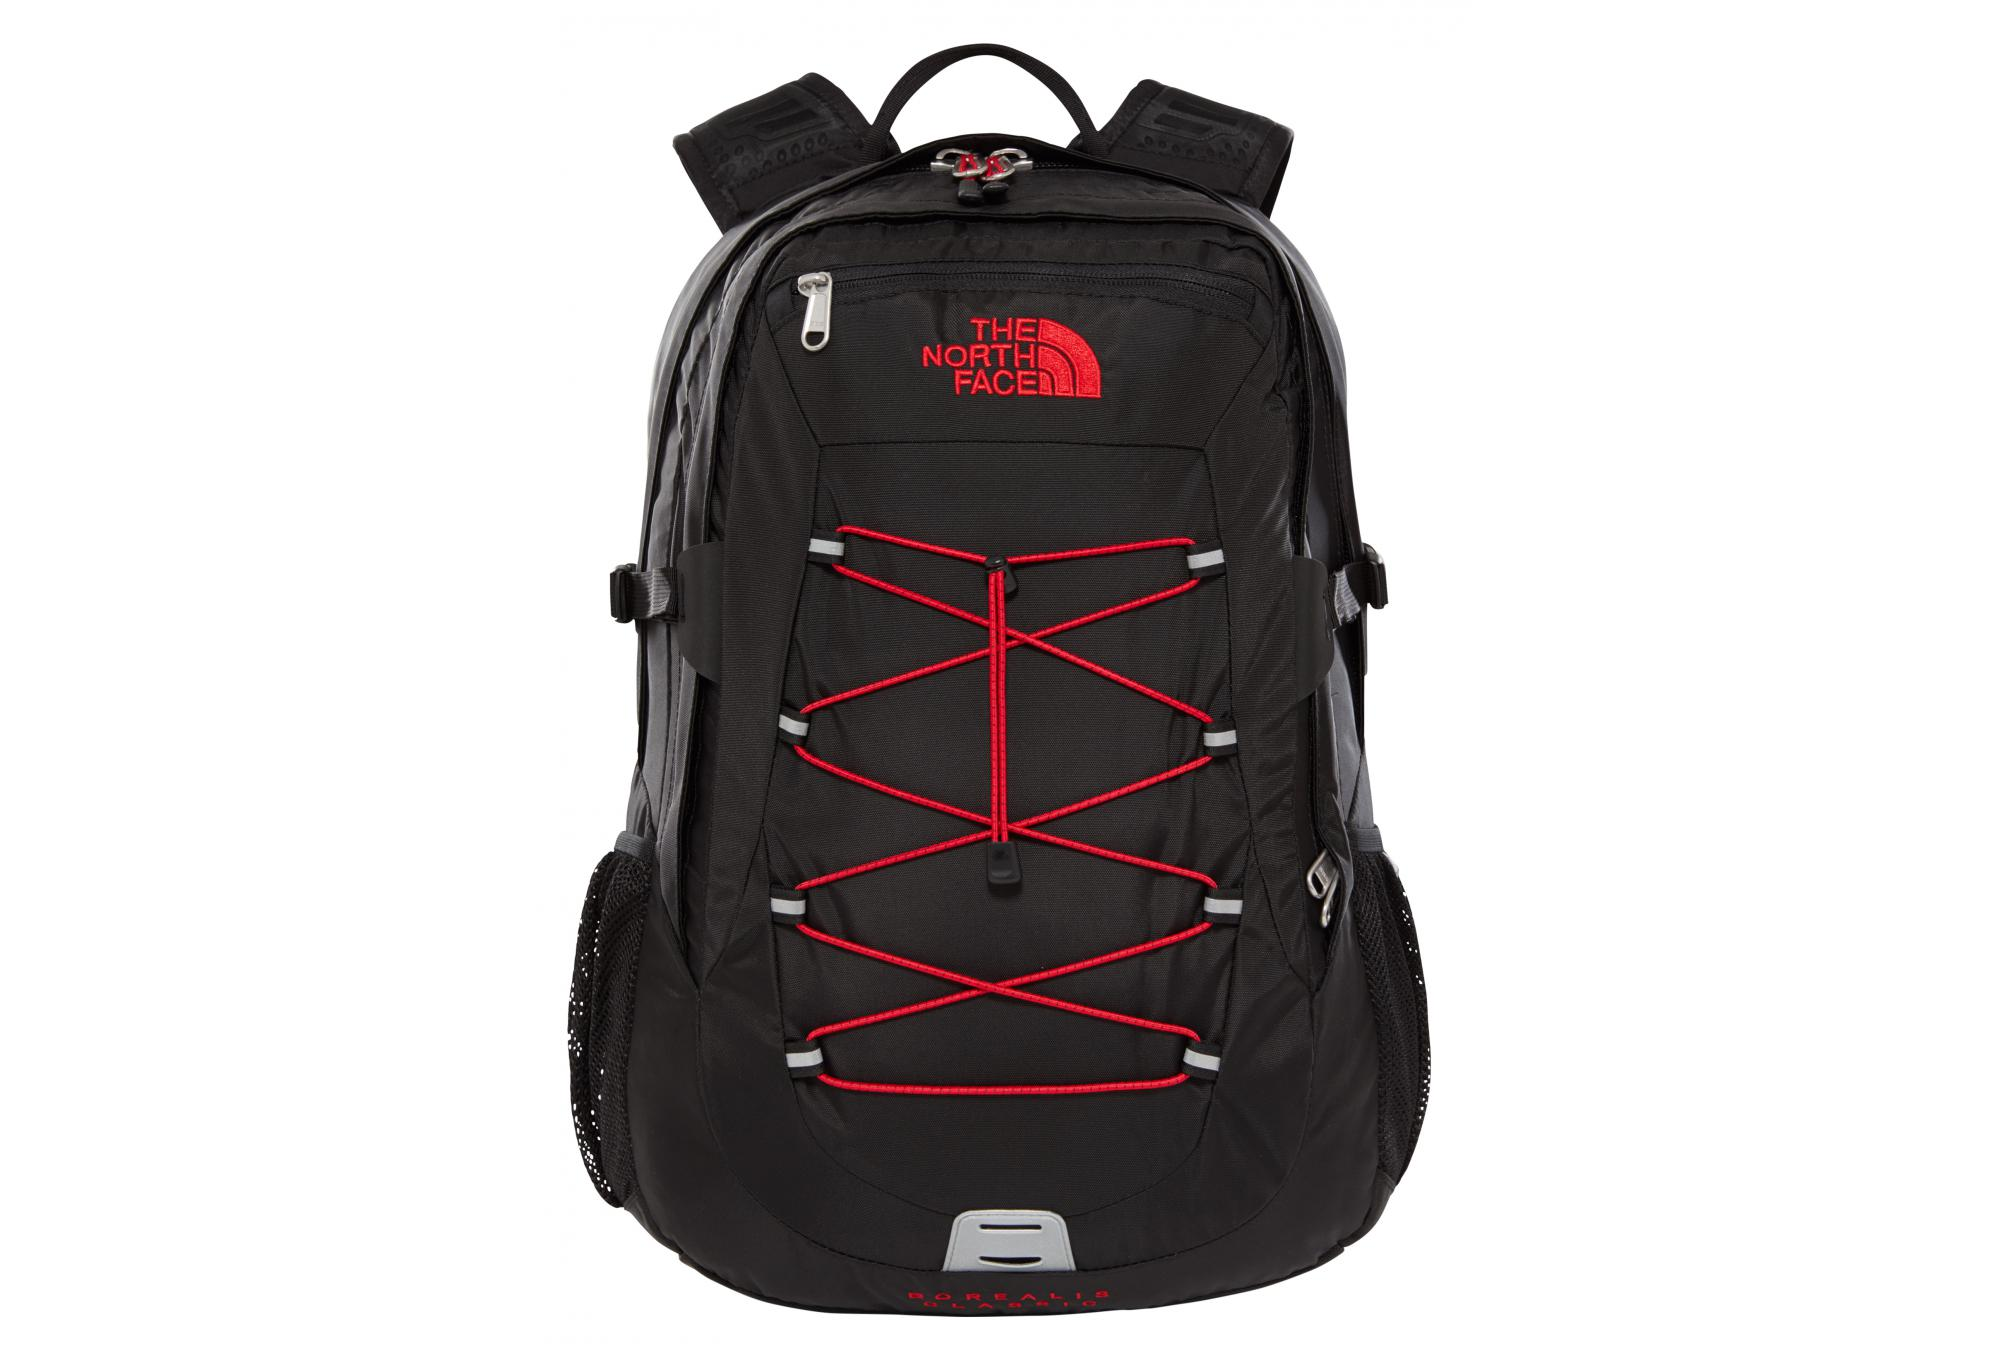 e339cb184a Sac à Dos The North Face Borealis Classic Noir Rouge | Alltricks.fr